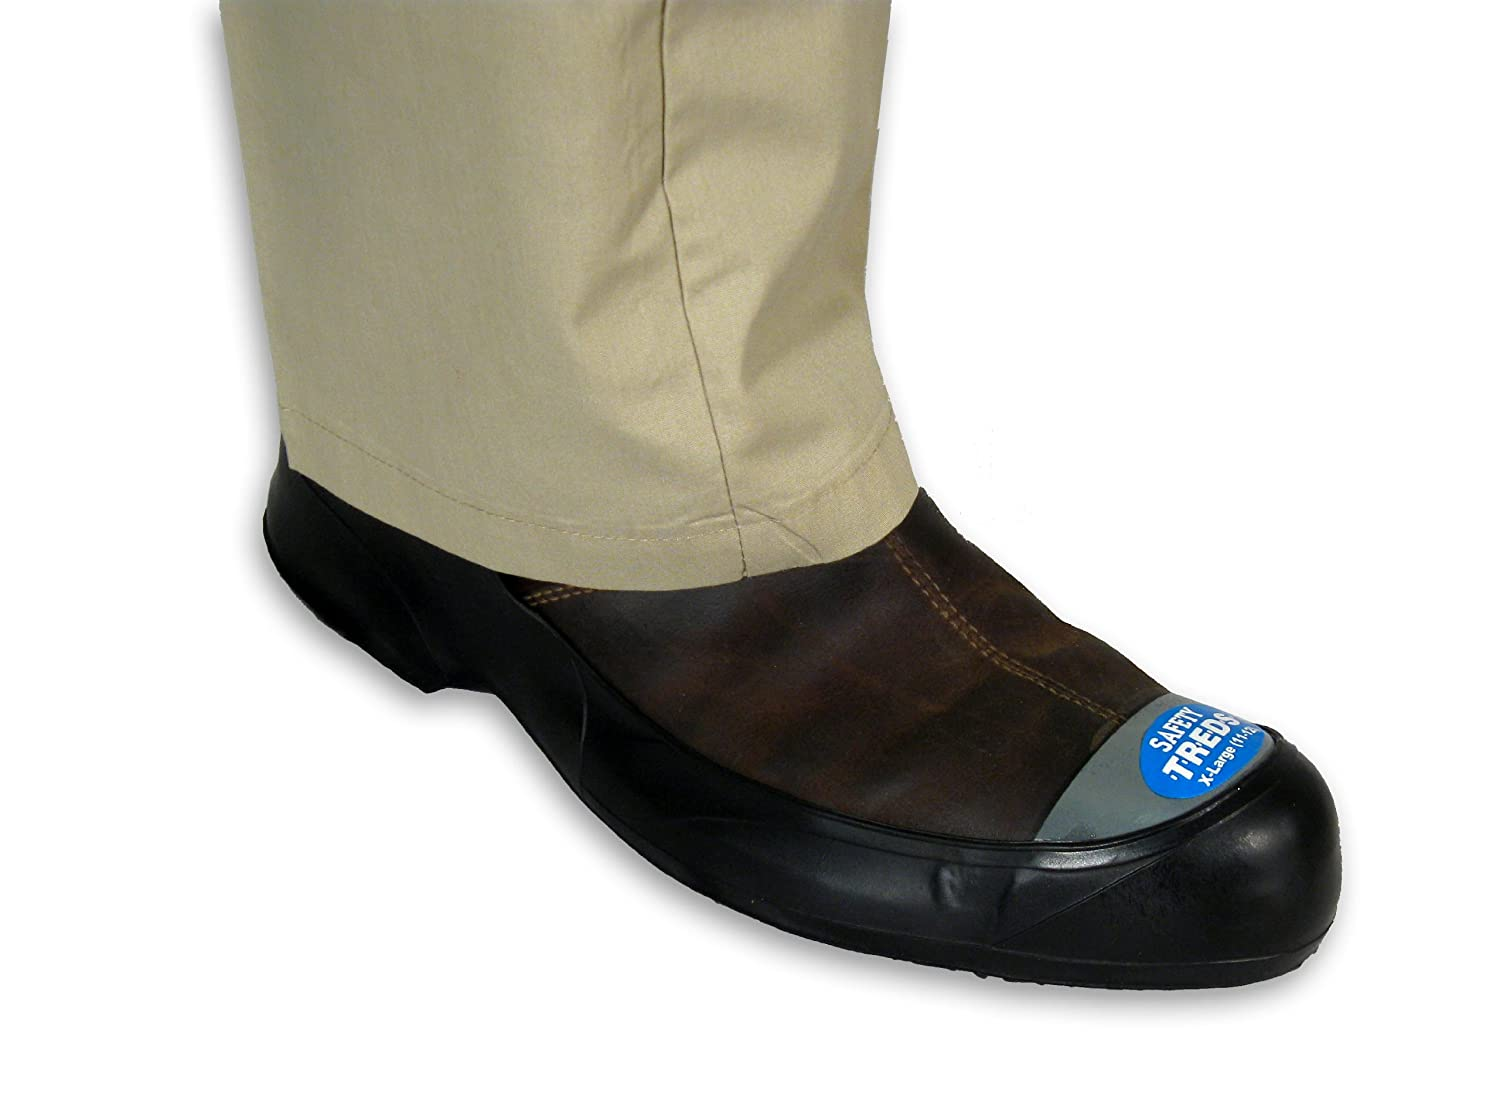 Safety TREDS 13431 Rubber Overshoes for